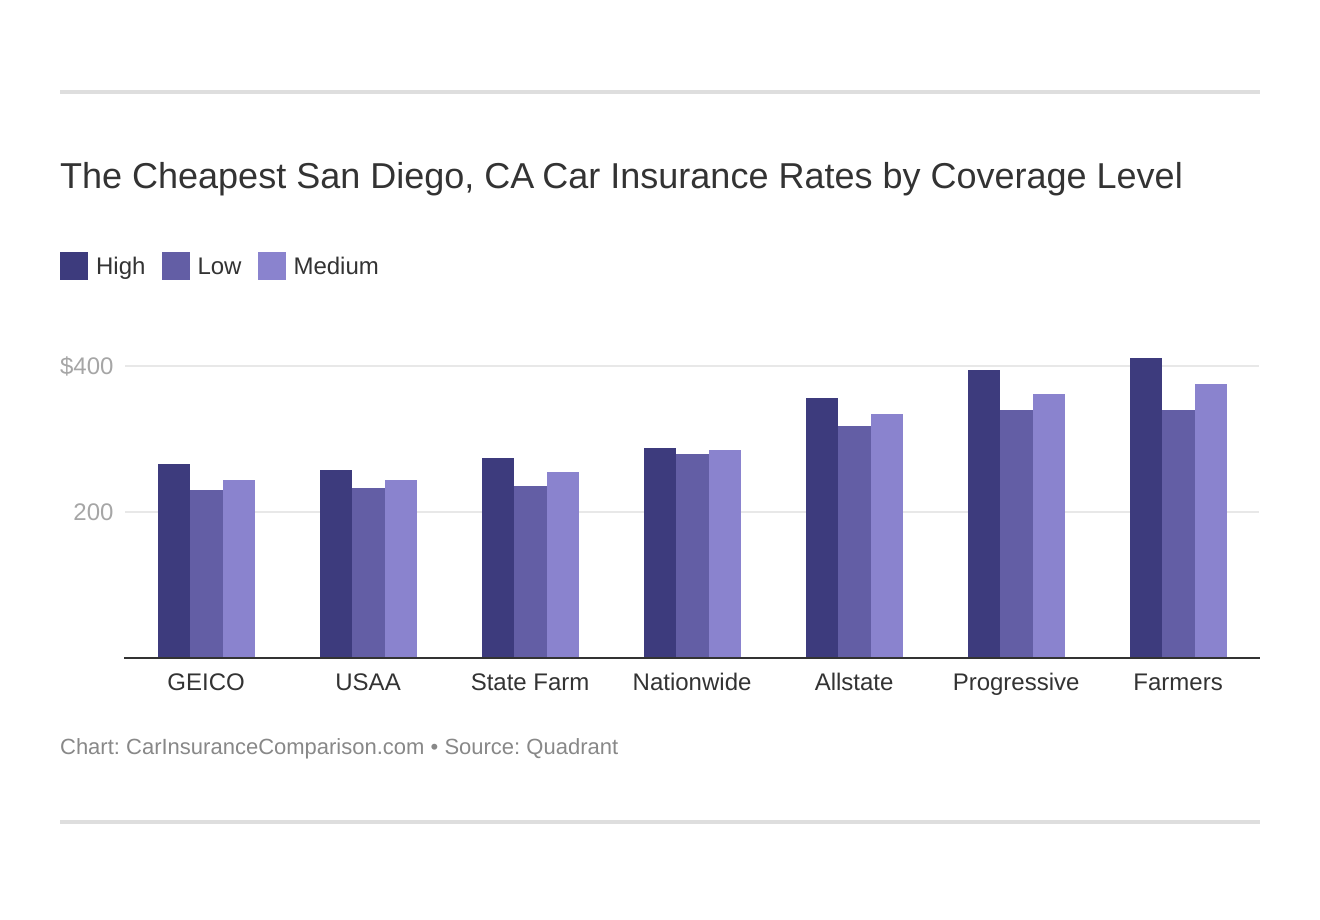 The Cheapest San Diego, CA Car Insurance Rates by Coverage Level